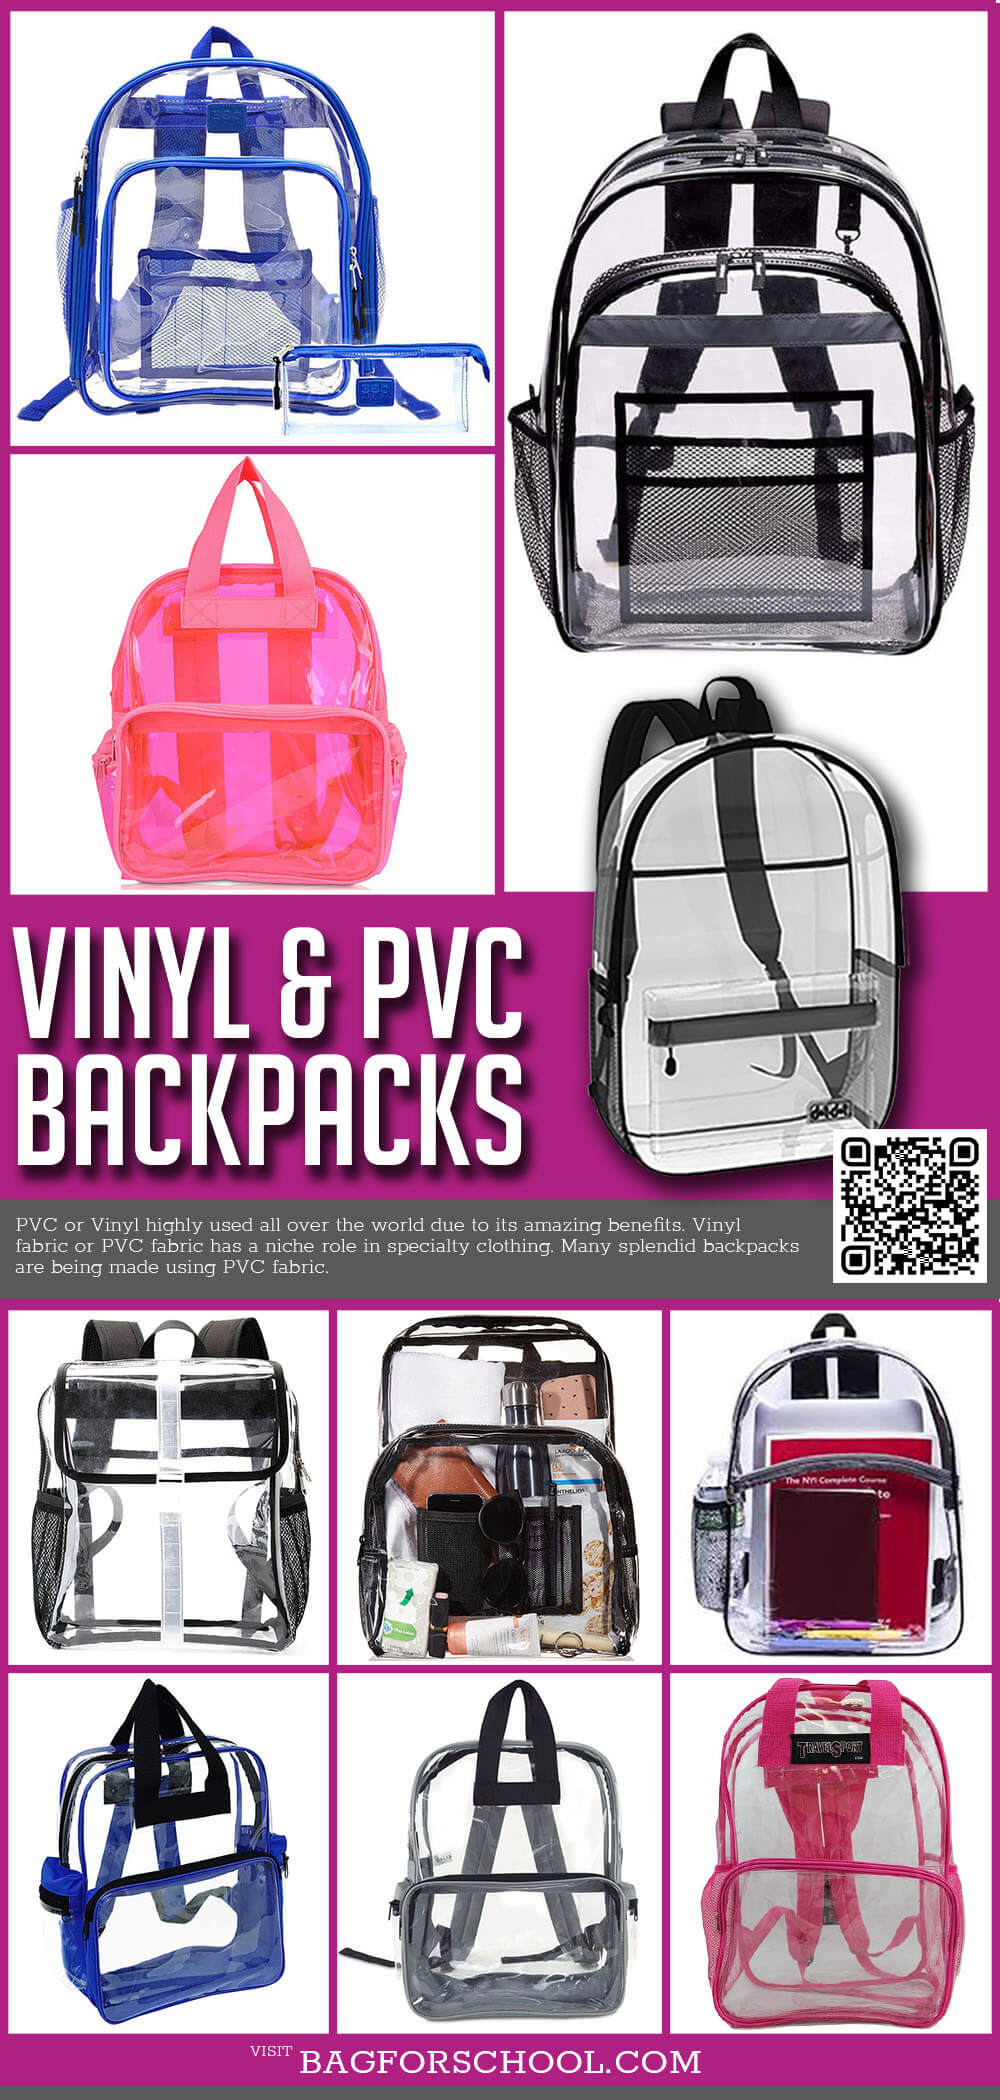 Vinyl PVC Backpacks